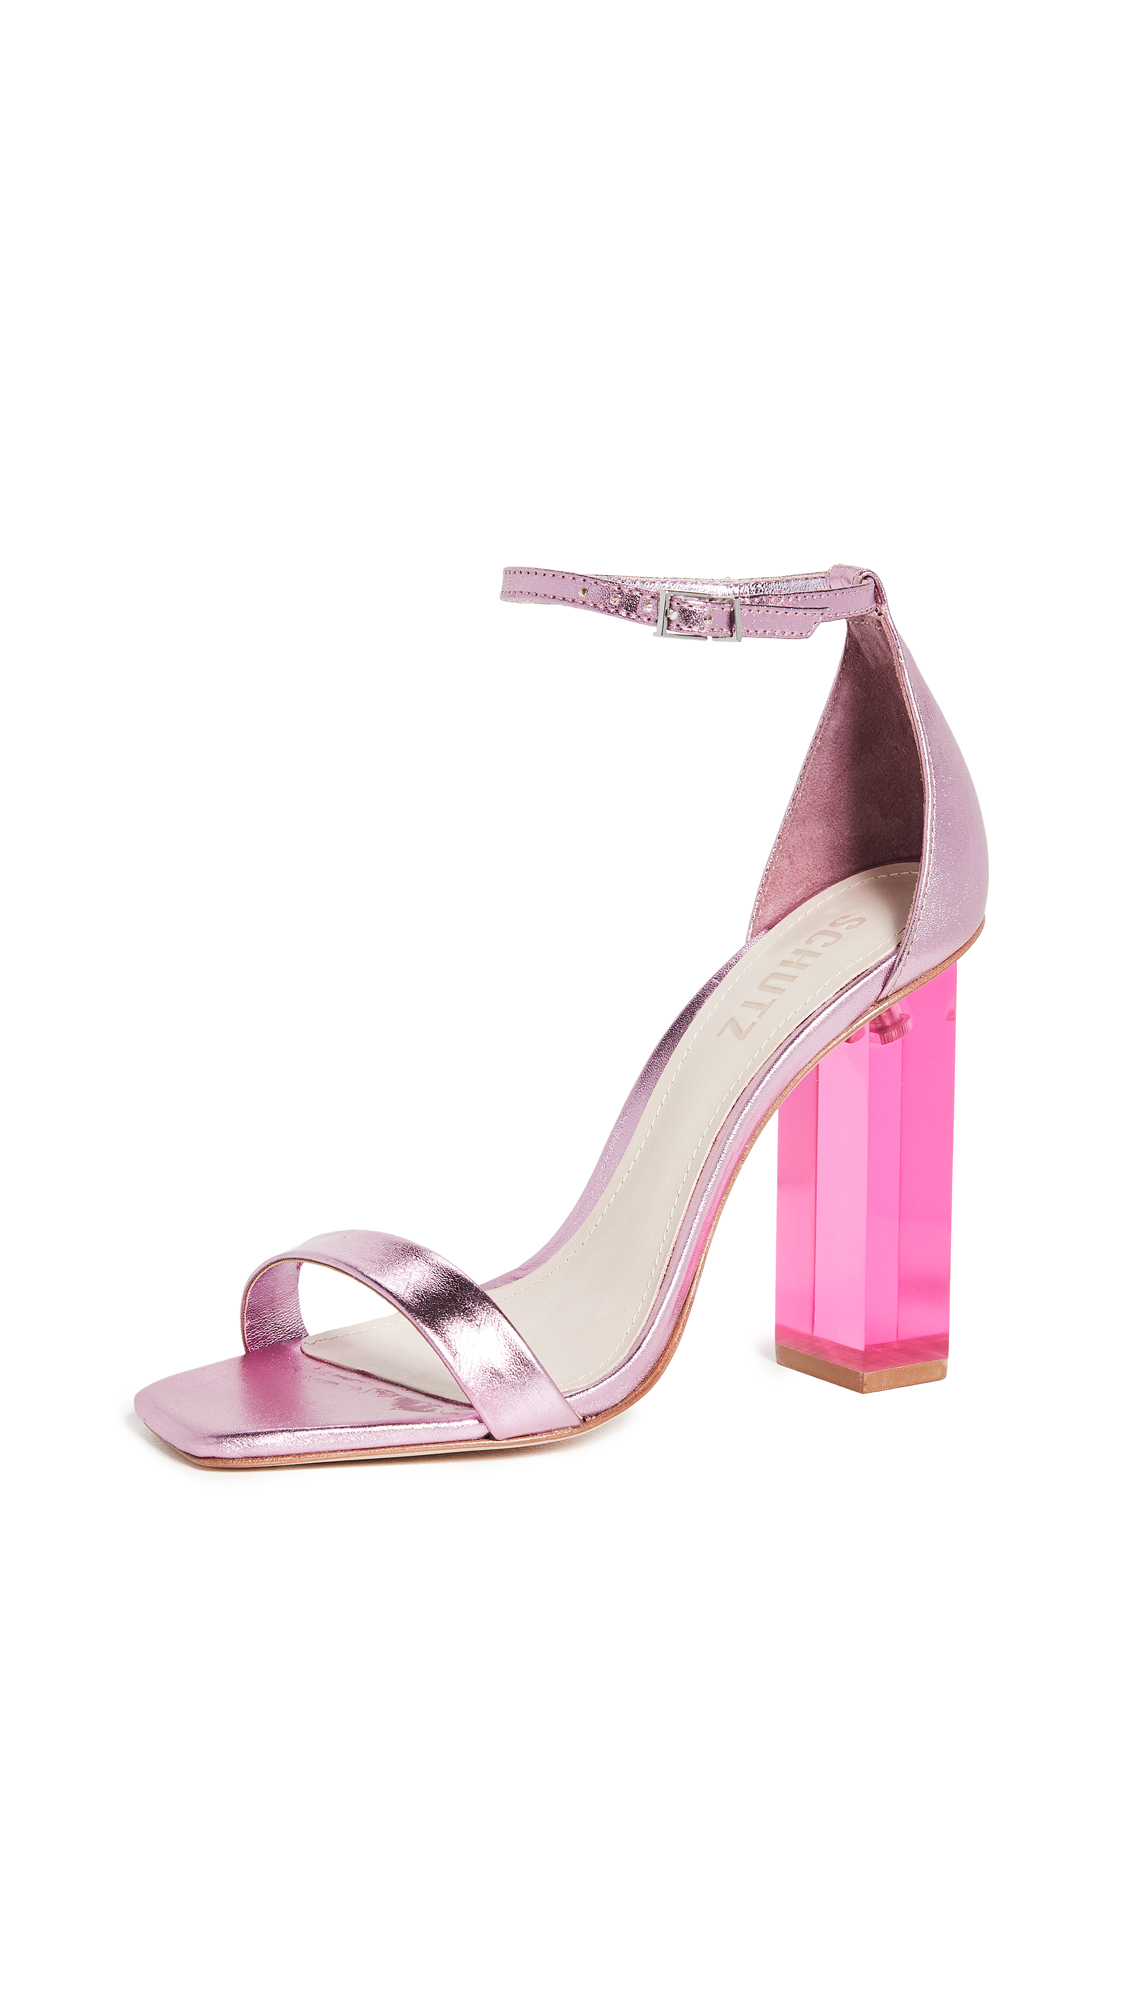 Schutz Sanai Sandals - 30% Off Sale